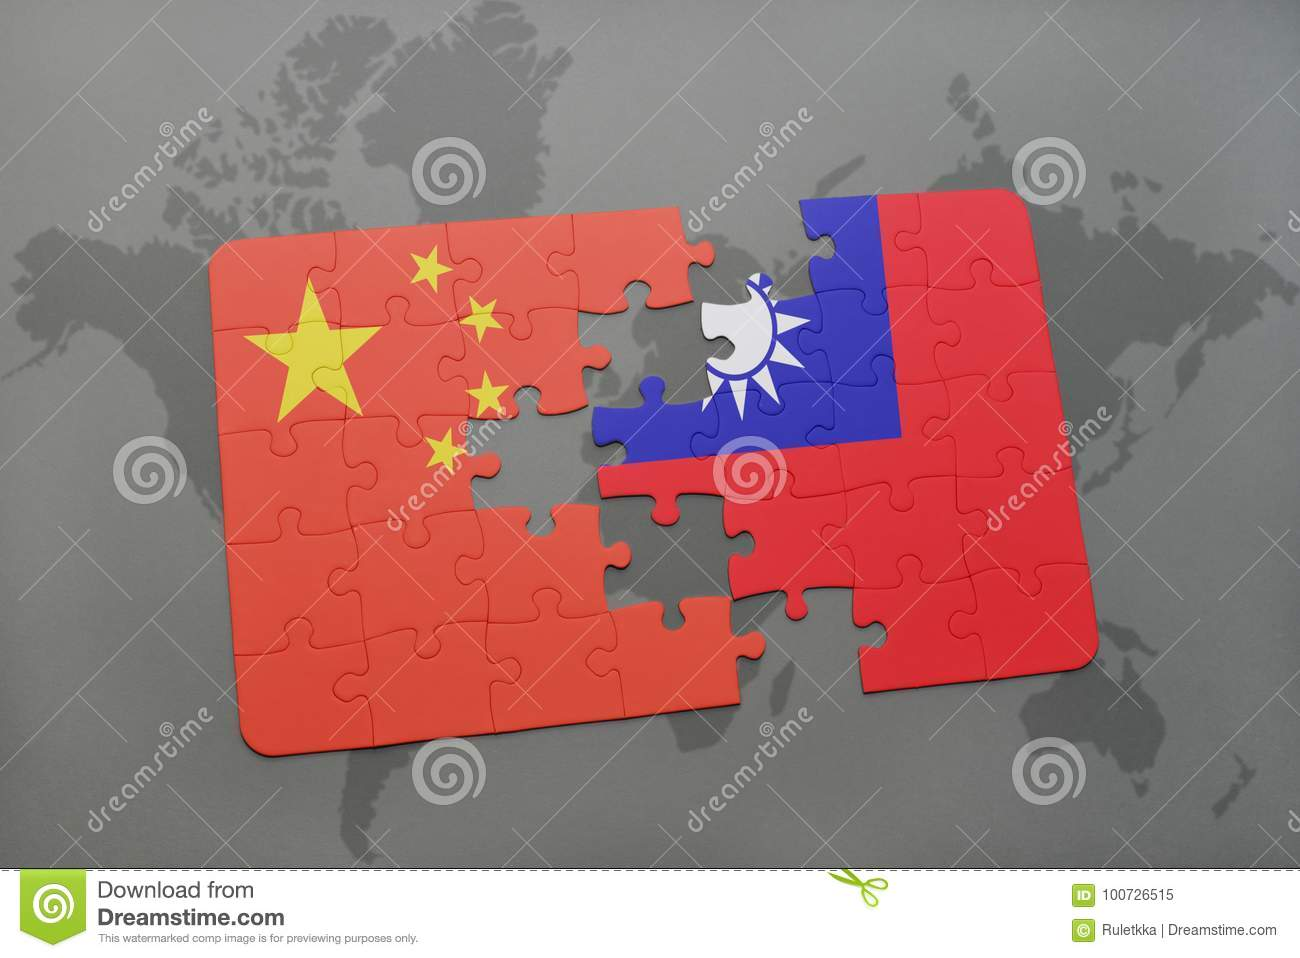 Taiwan On A World Map.Puzzle With The National Flag Of China And Taiwan On A World Map